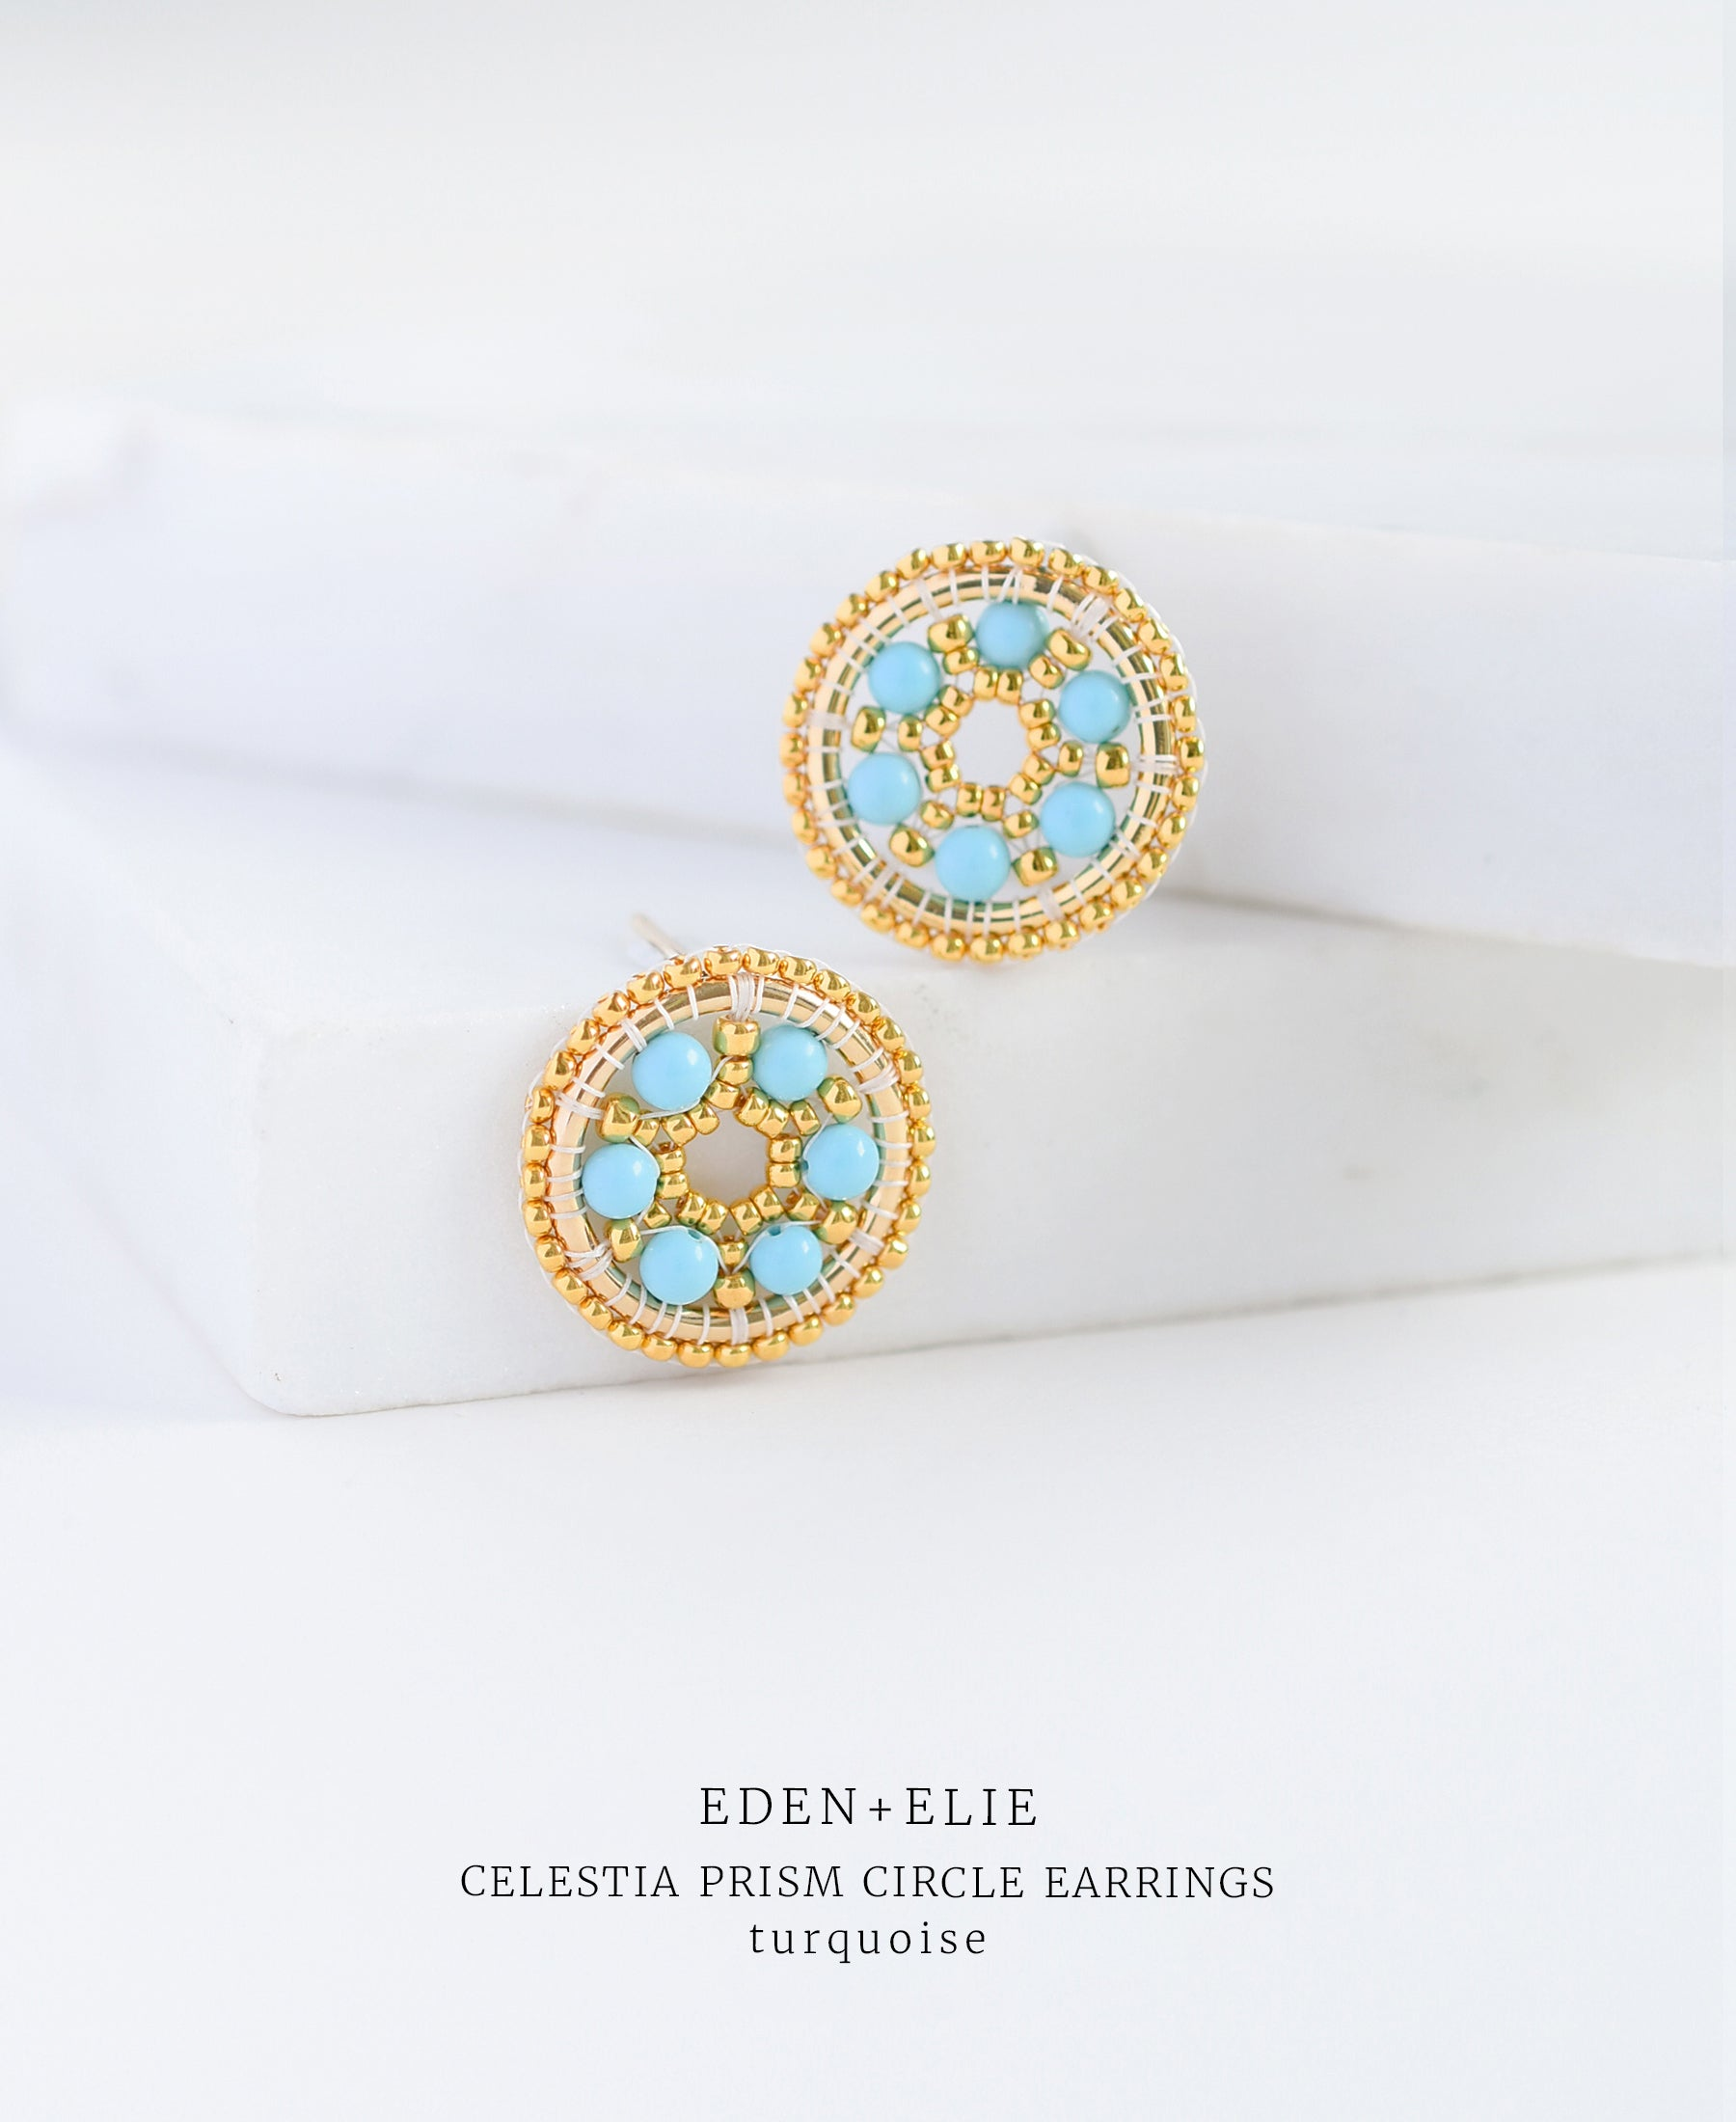 EDEN + ELIE Celestia prism circle earrings - turquoise